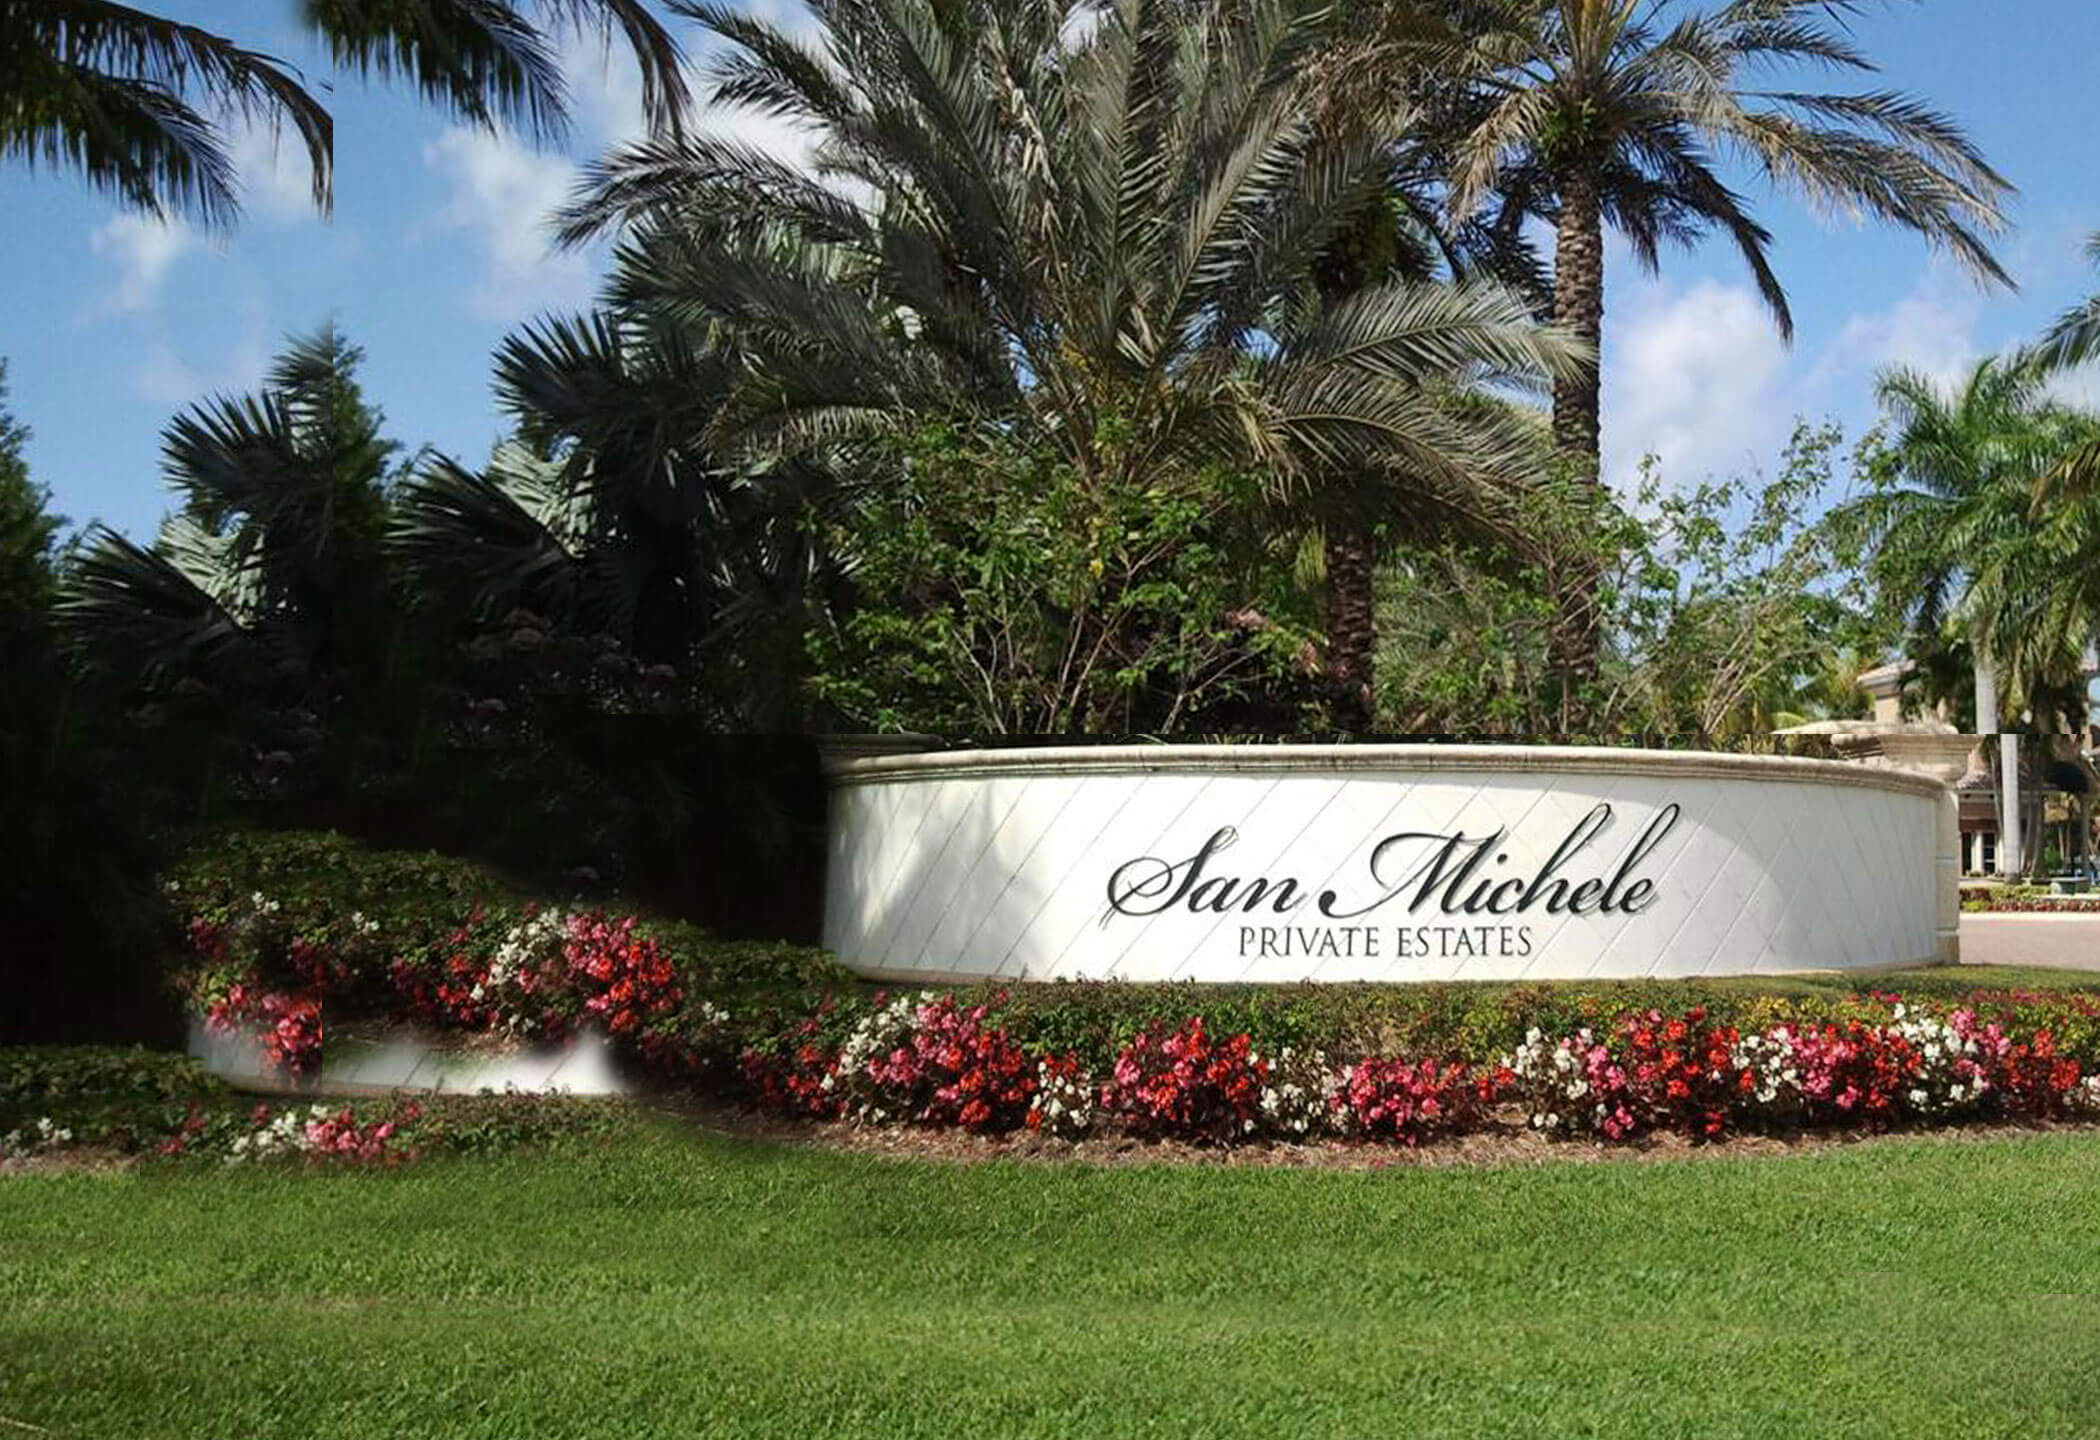 San Michele Homes For Sale Palm Beach Gardens Florida Real Estate